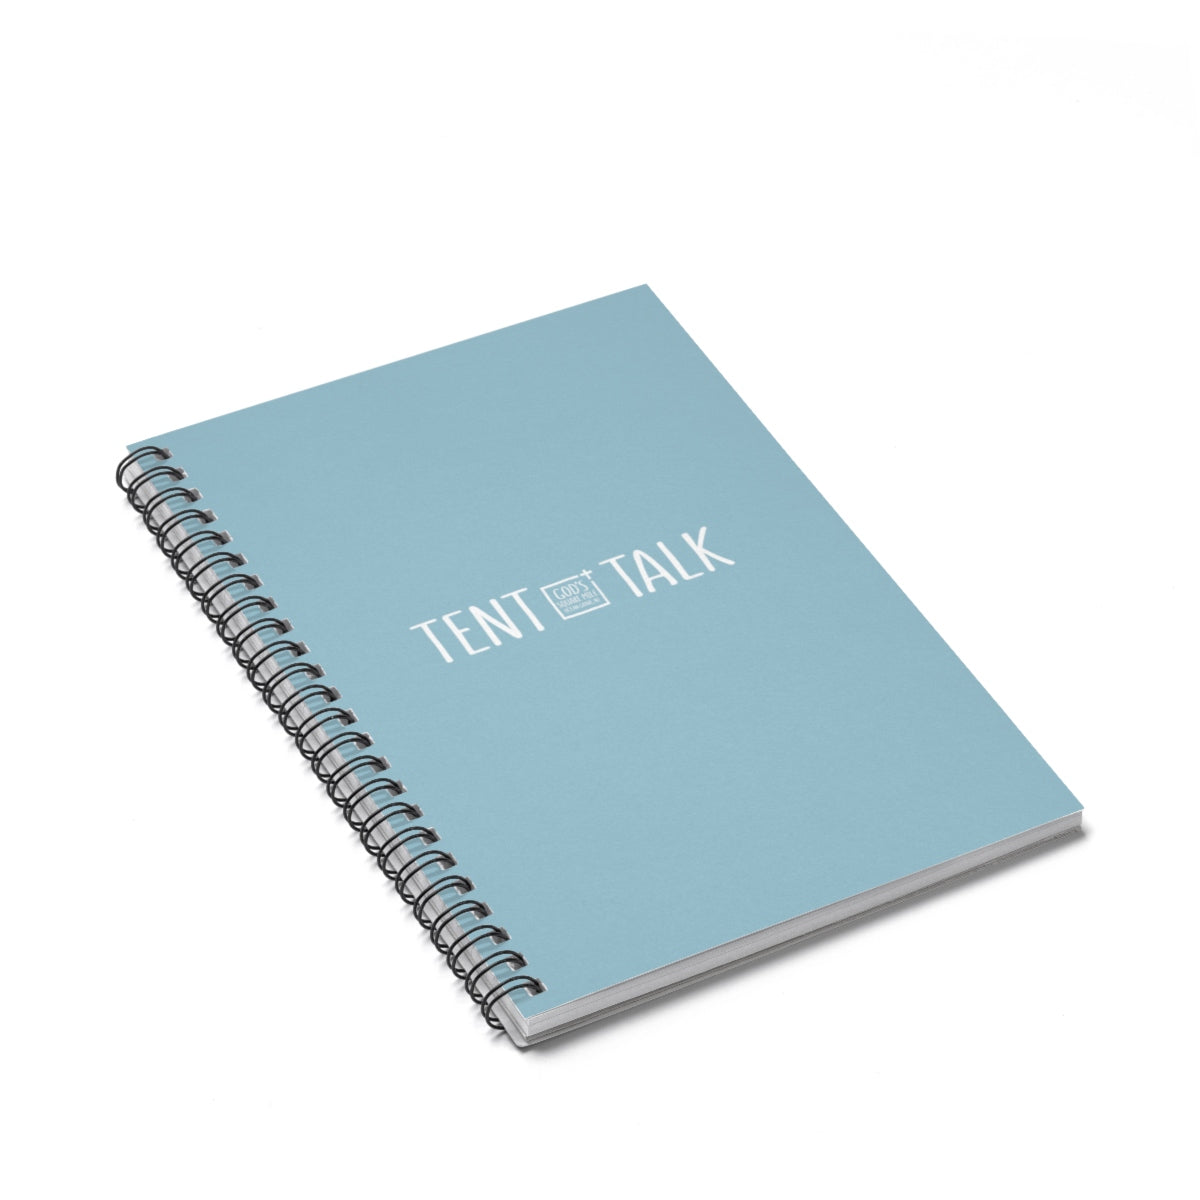 Tent Talk Spiral Notebook - Light Blue Gray